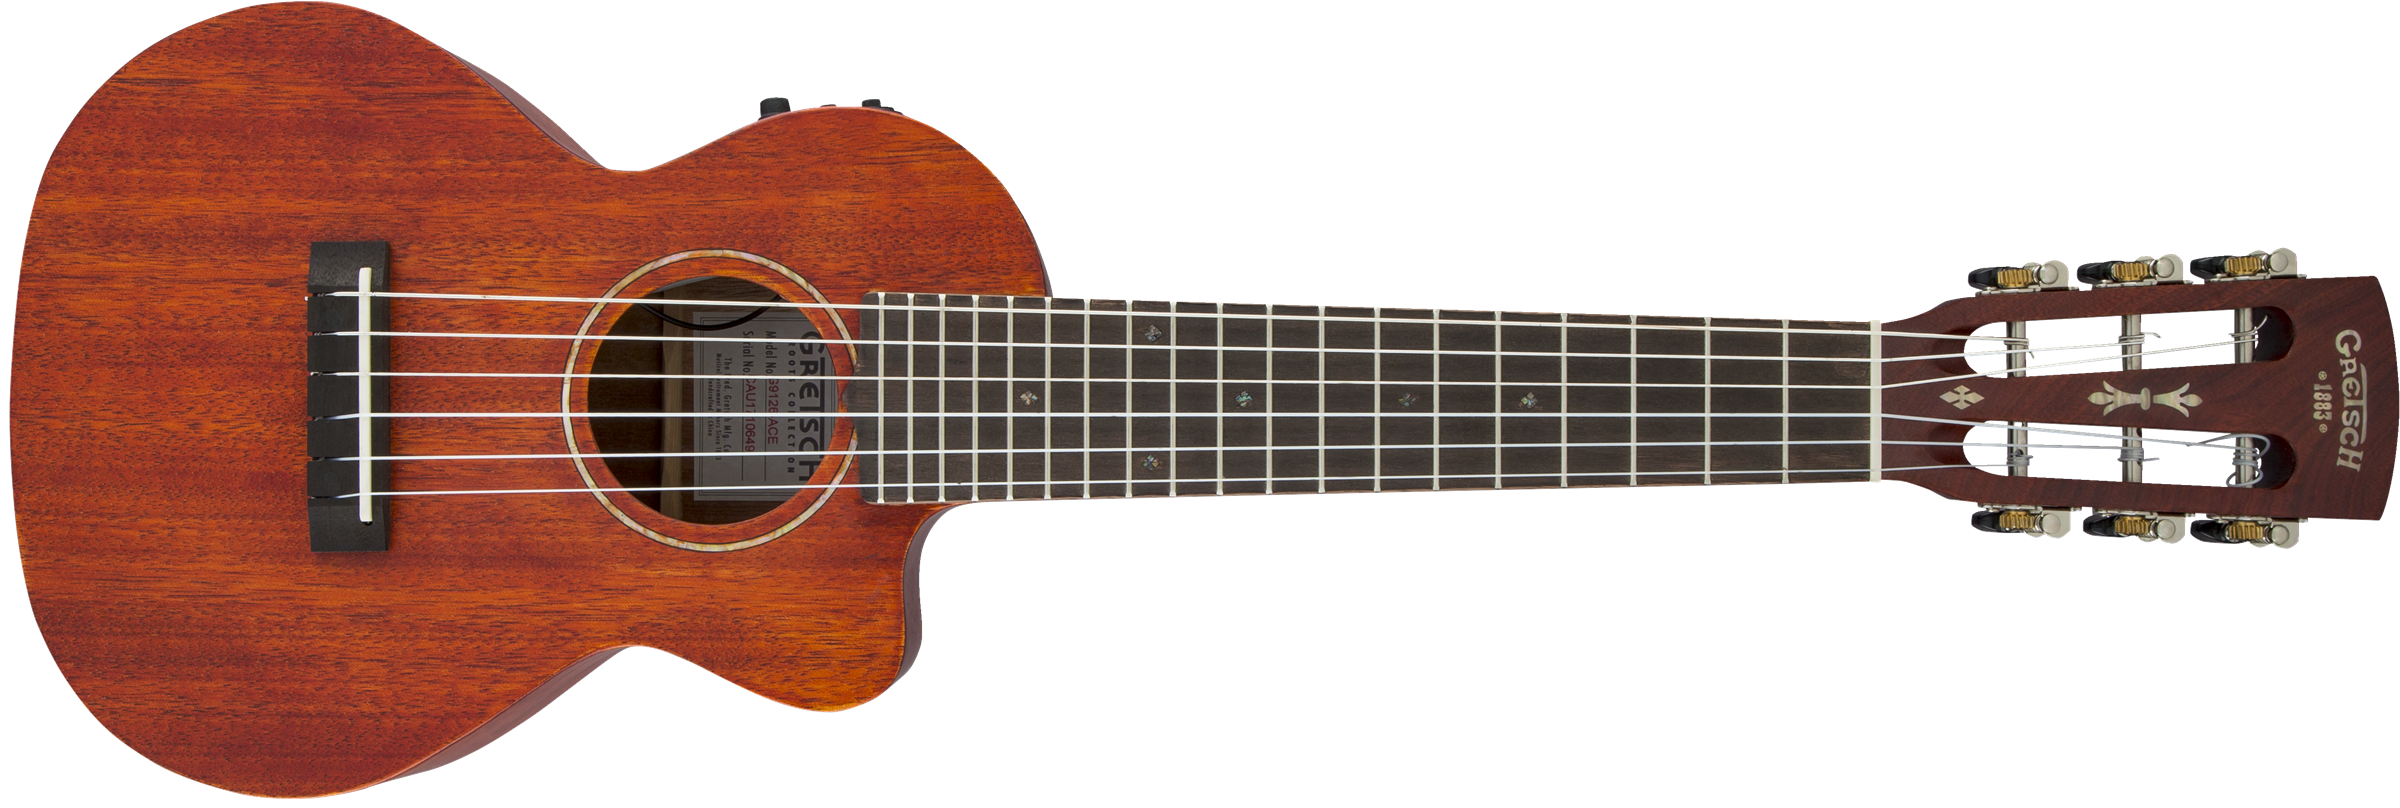 GRETSCH G9126 A.C.E. Guitar-Ukulele, Acoustic-Cutaway-Electric with Gig Bag, Ovangkol Fingerboard, Fishman Kula Pickup, Honey Mahogany Stain